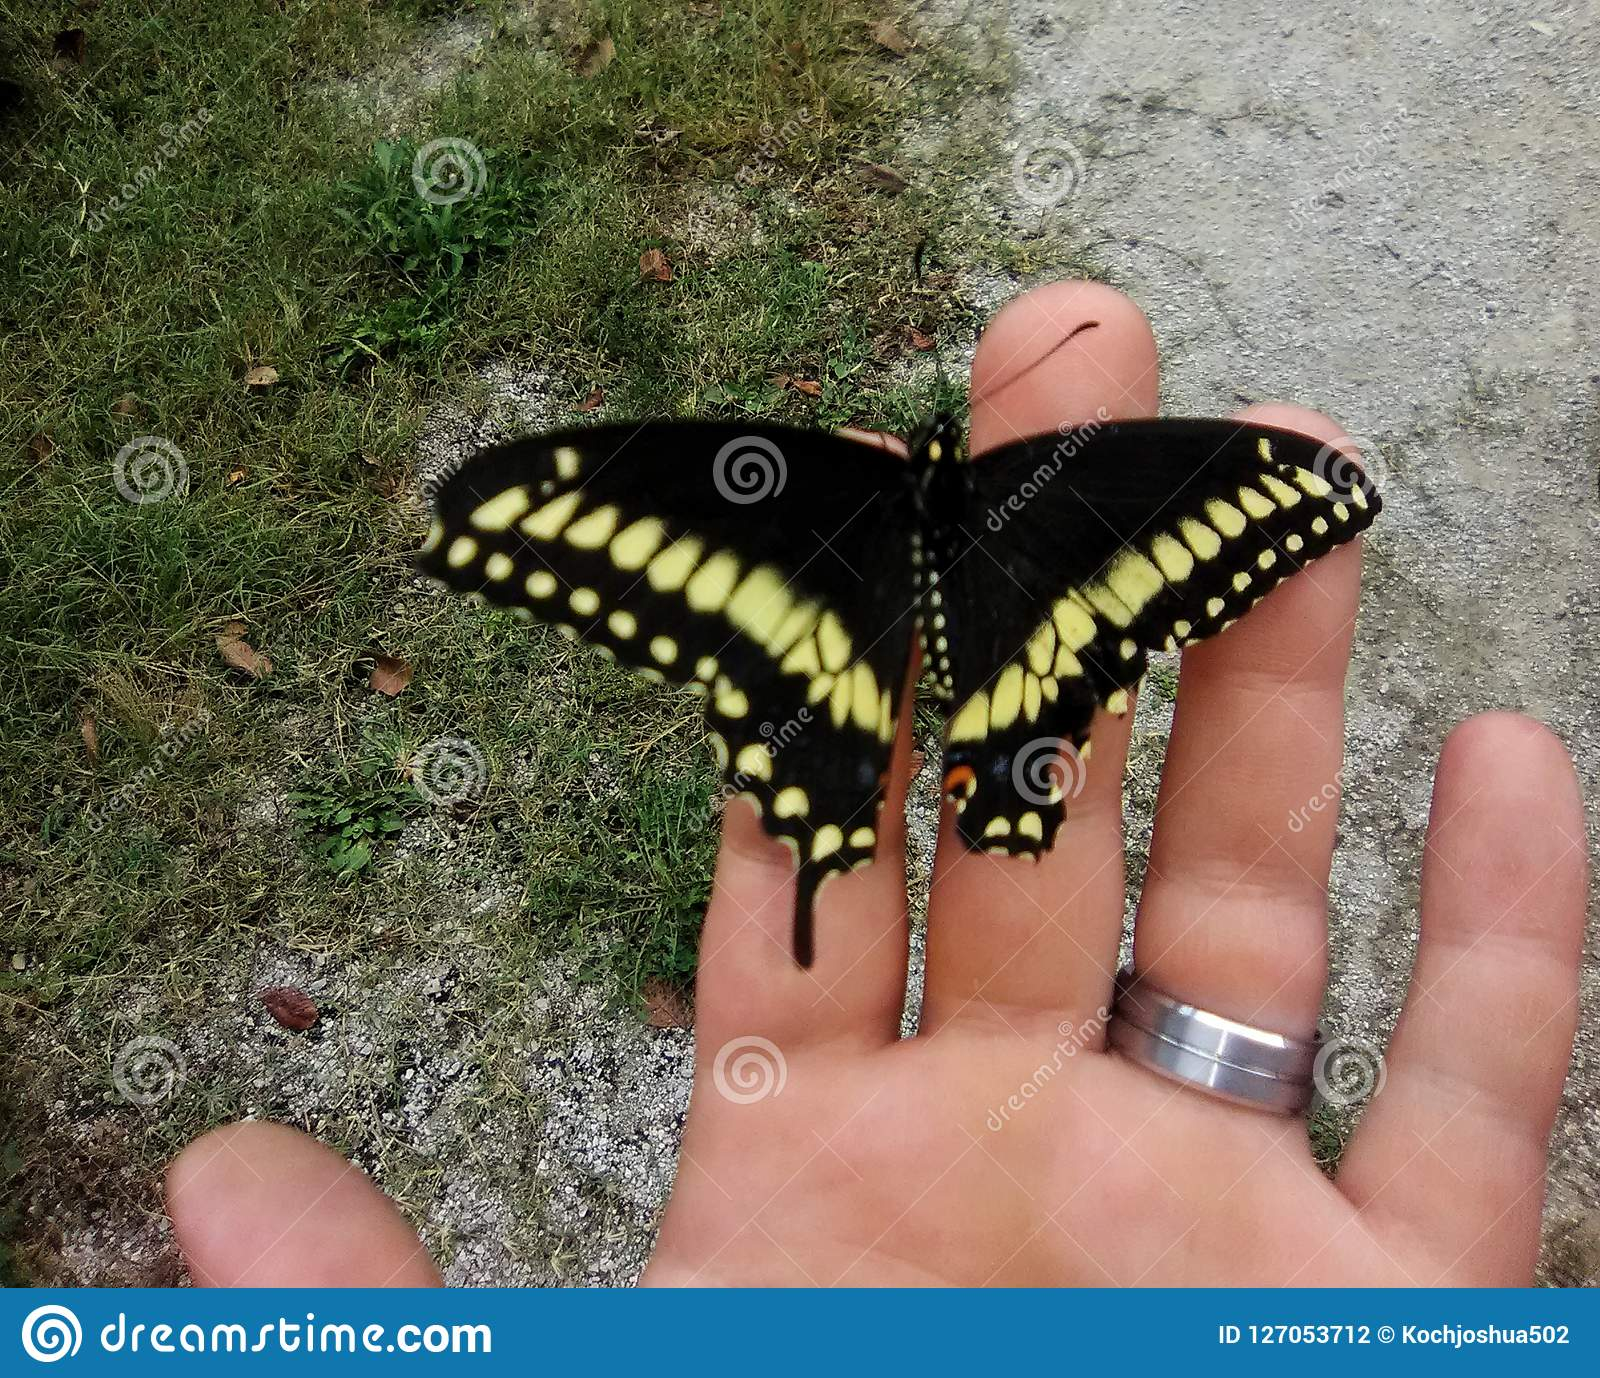 Swallowtail Butterfly on a hand with wedding band